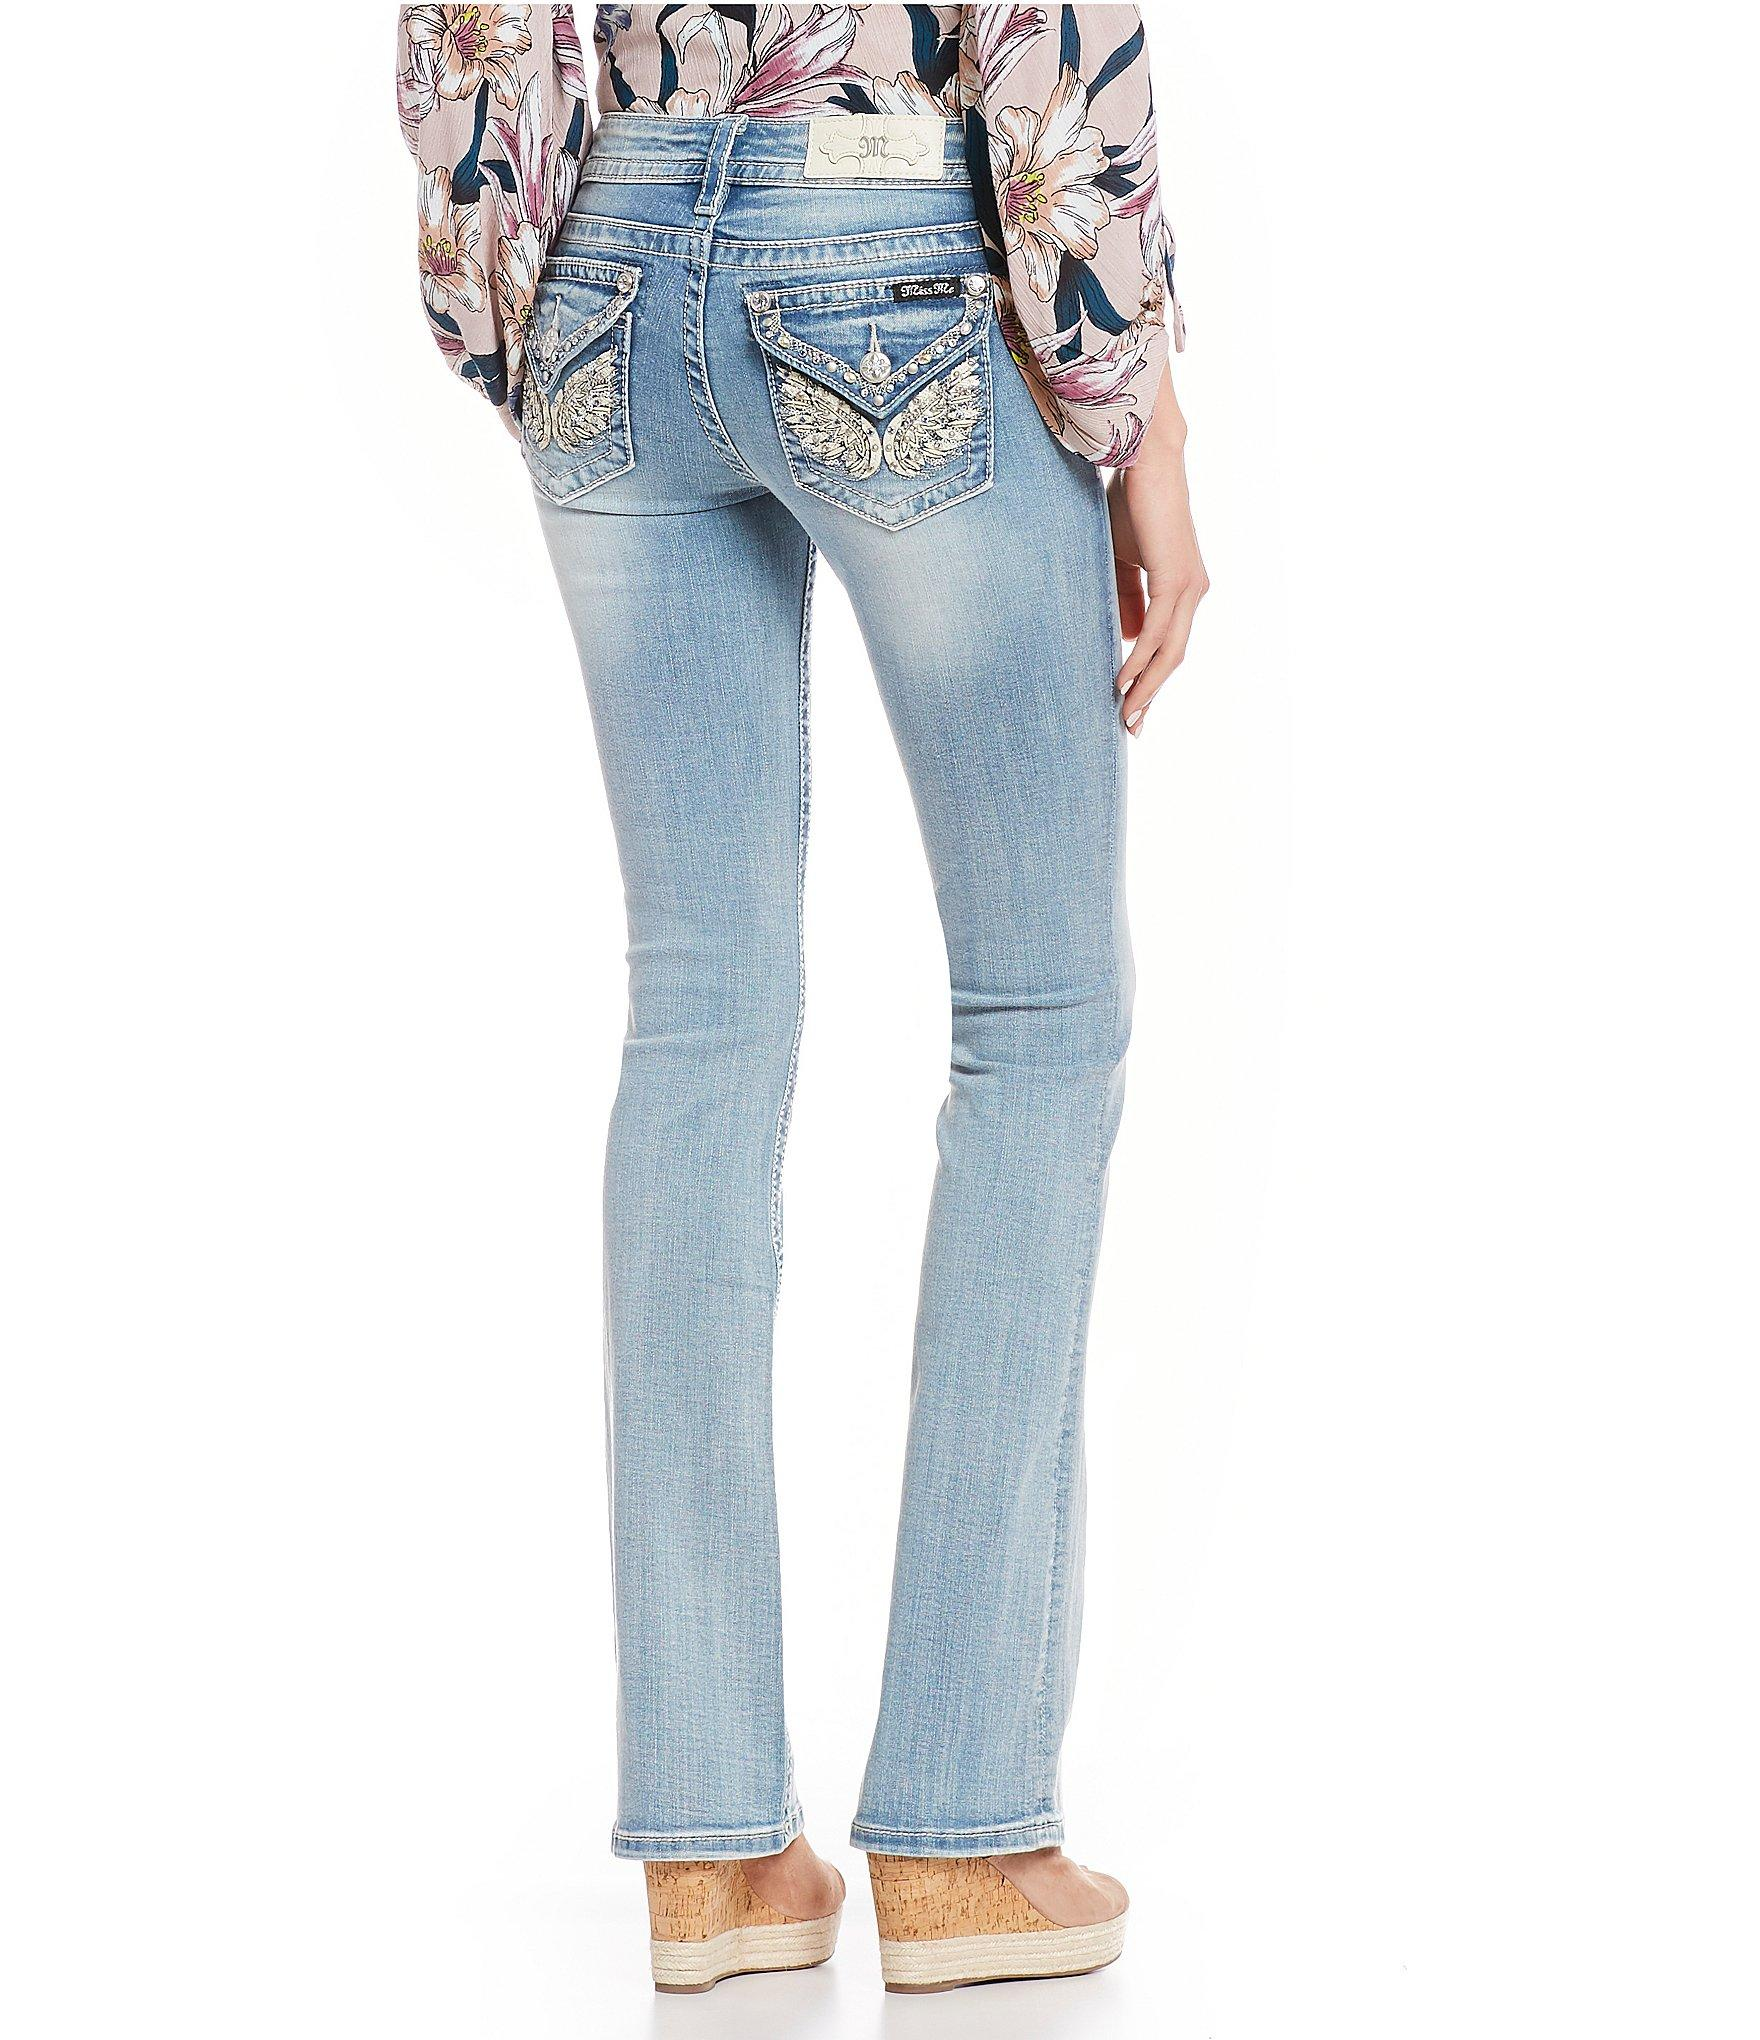 f55d18d7017 Lyst - Miss Me Embellished Wing Flap Pocket Bootcut Jeans in Blue